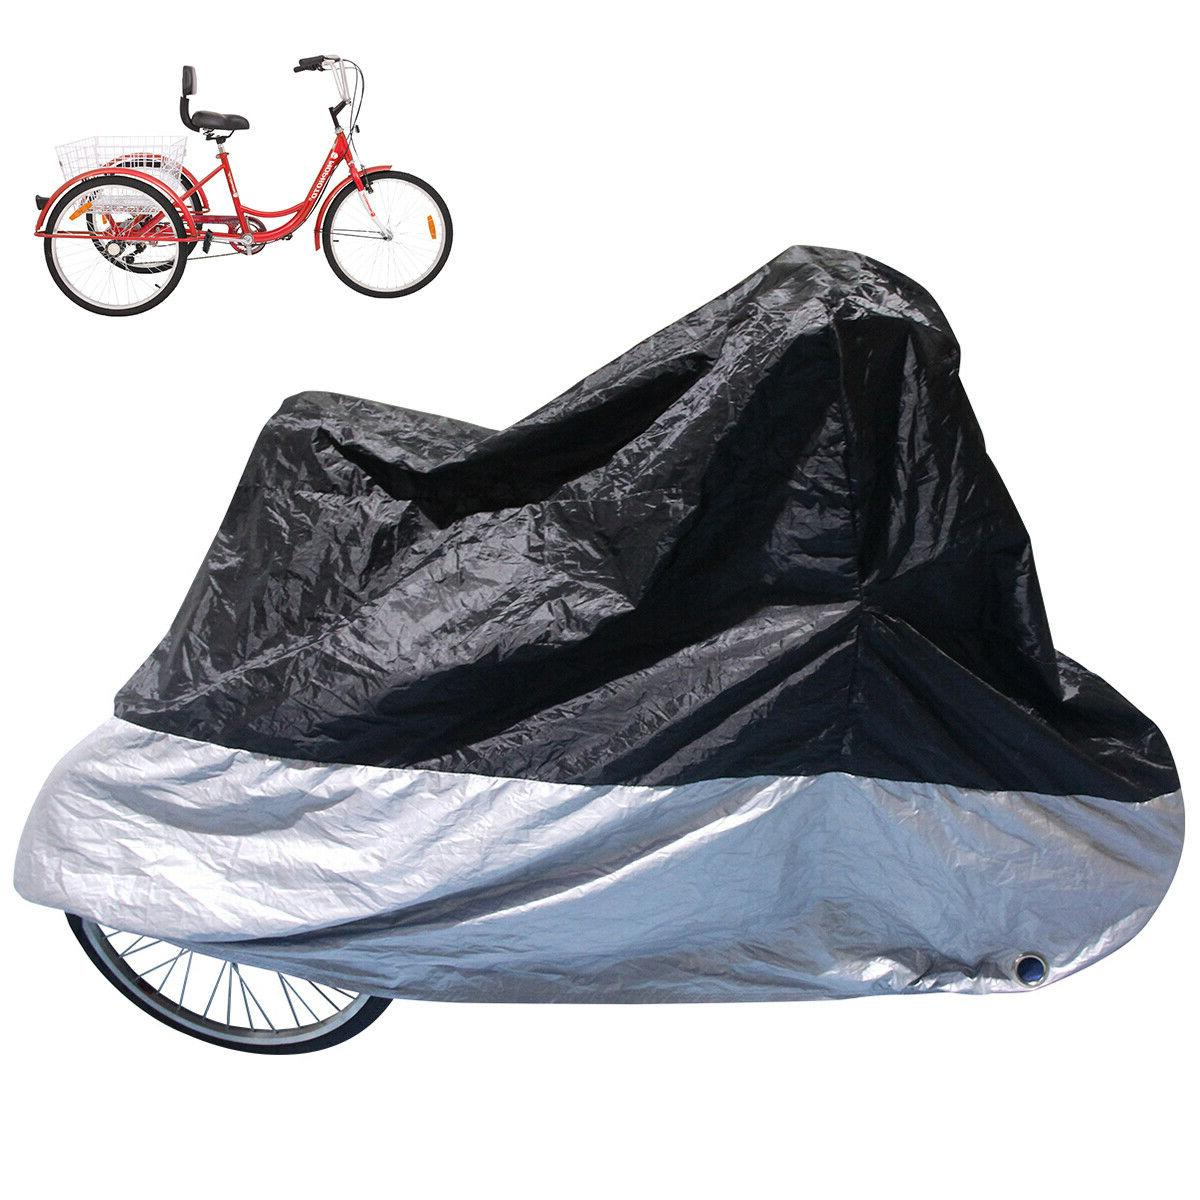 75*30*44inch Waterproof Bicycle Tricycle Bike Cover Outdoor